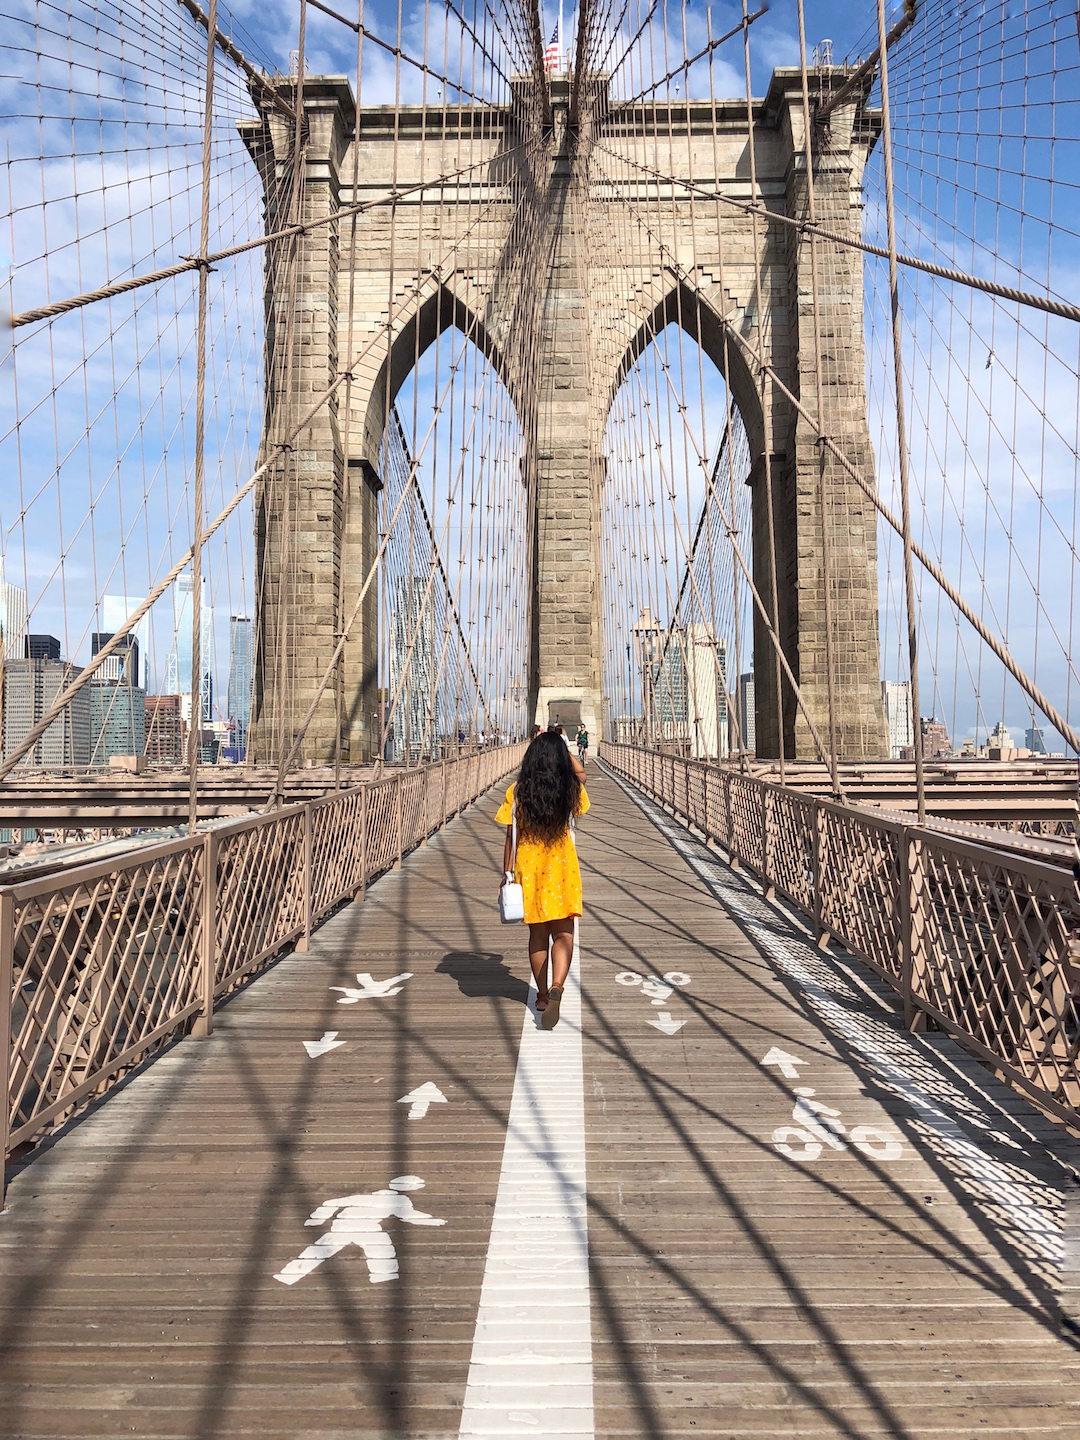 Her_Travel_Edit_NYC_Brooklyn_Bridge